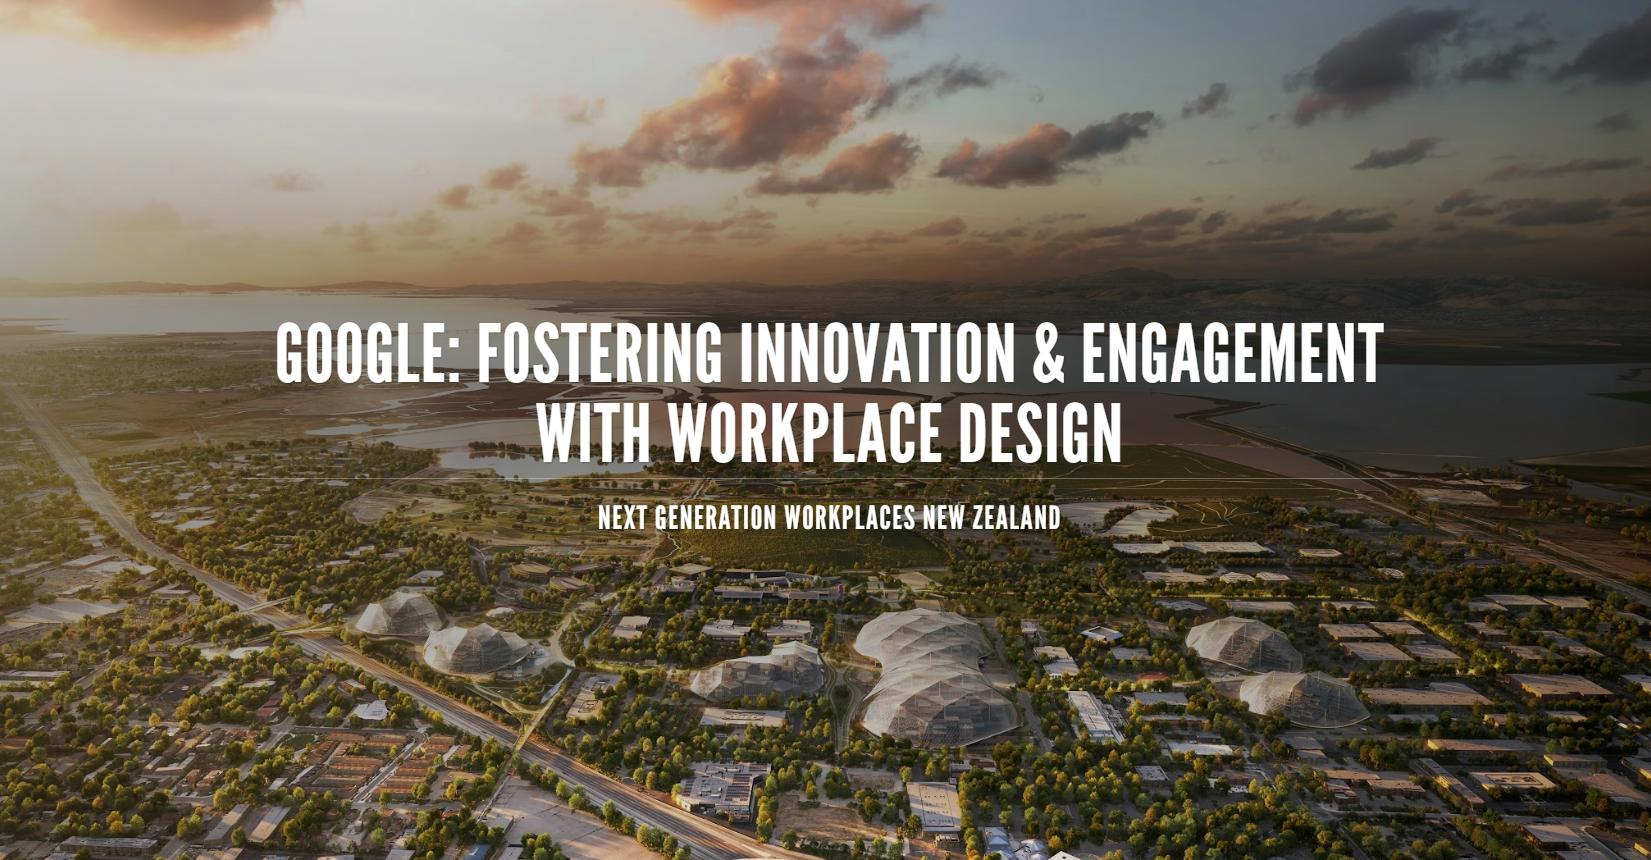 Google: Fostering Innovation & Engagement with Workplace Design